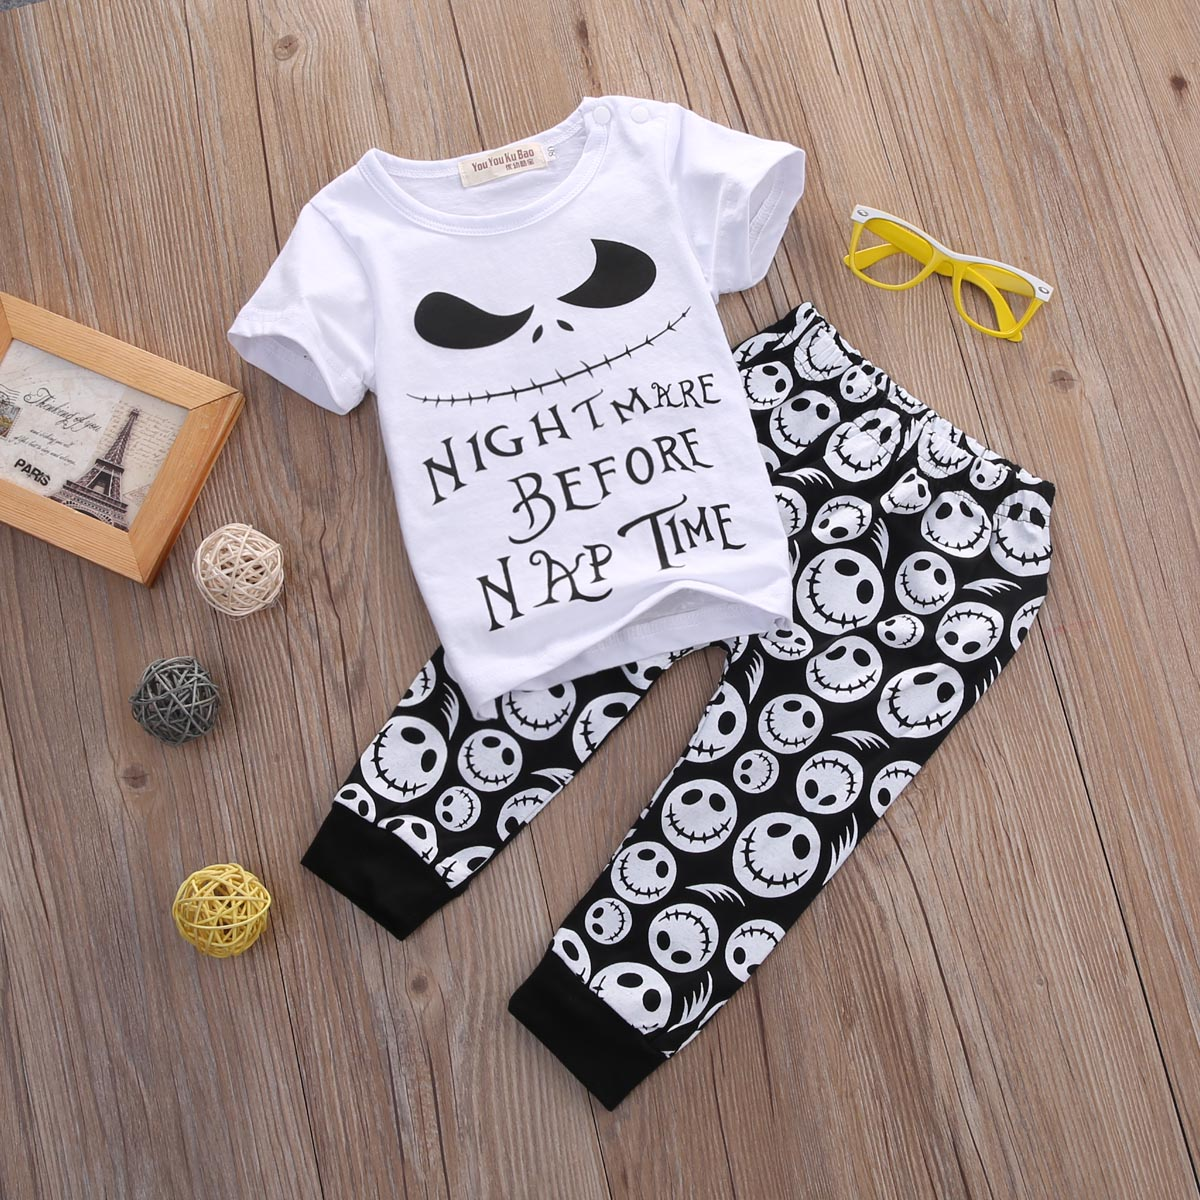 2PCSNew-Cartoon-Cotton-Halloween-Letter-Clothing-Set-Baby-Boy-Children-Kids-T-shirtPants-Toddler-boy-summer-Outfits-Clothes-1